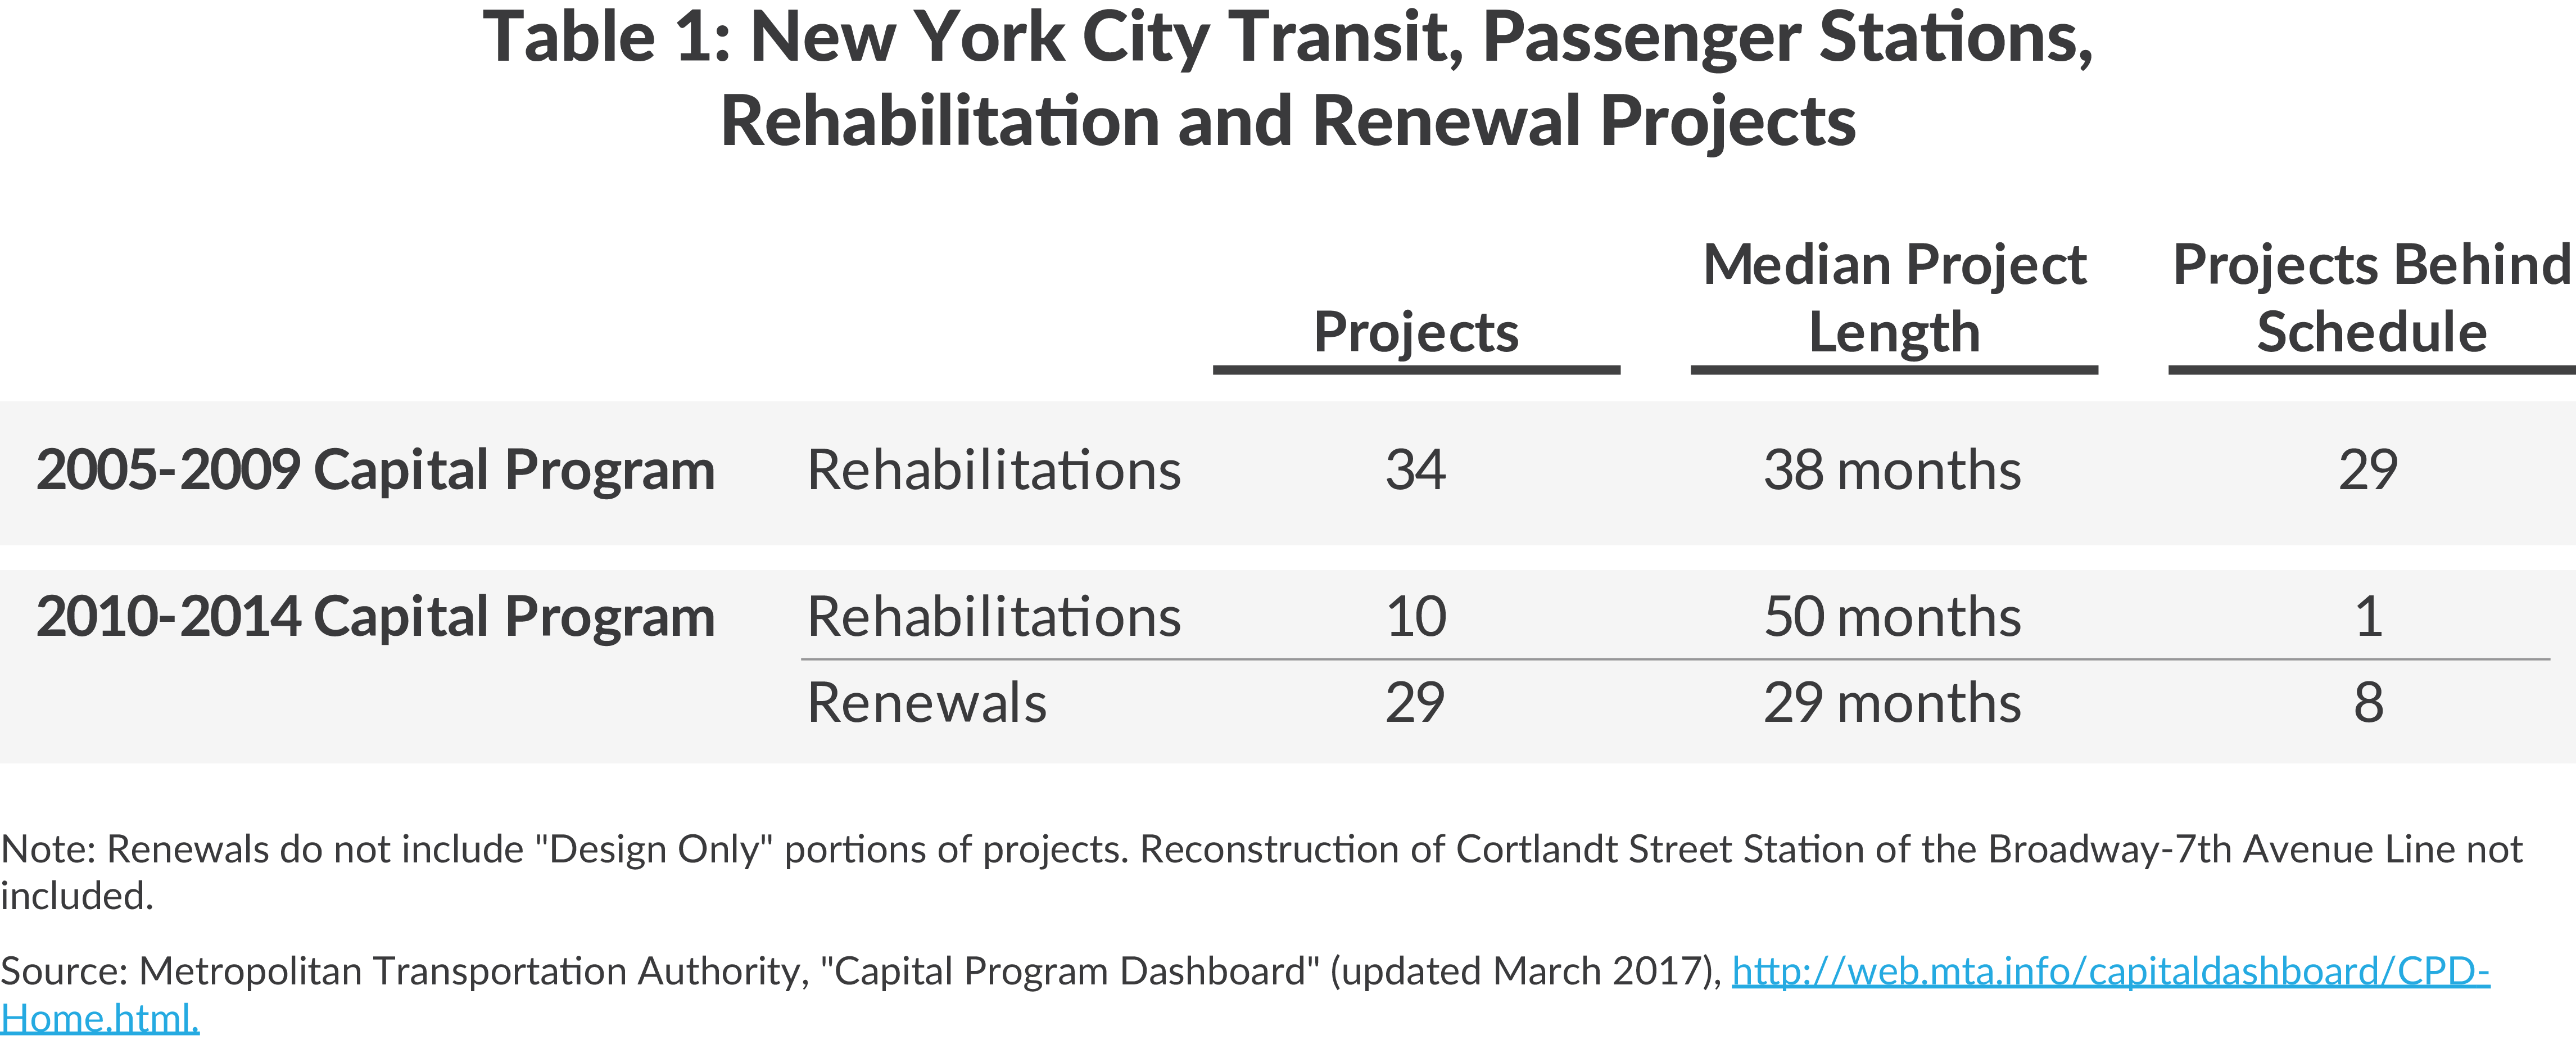 Table of New York City Transit stations projects